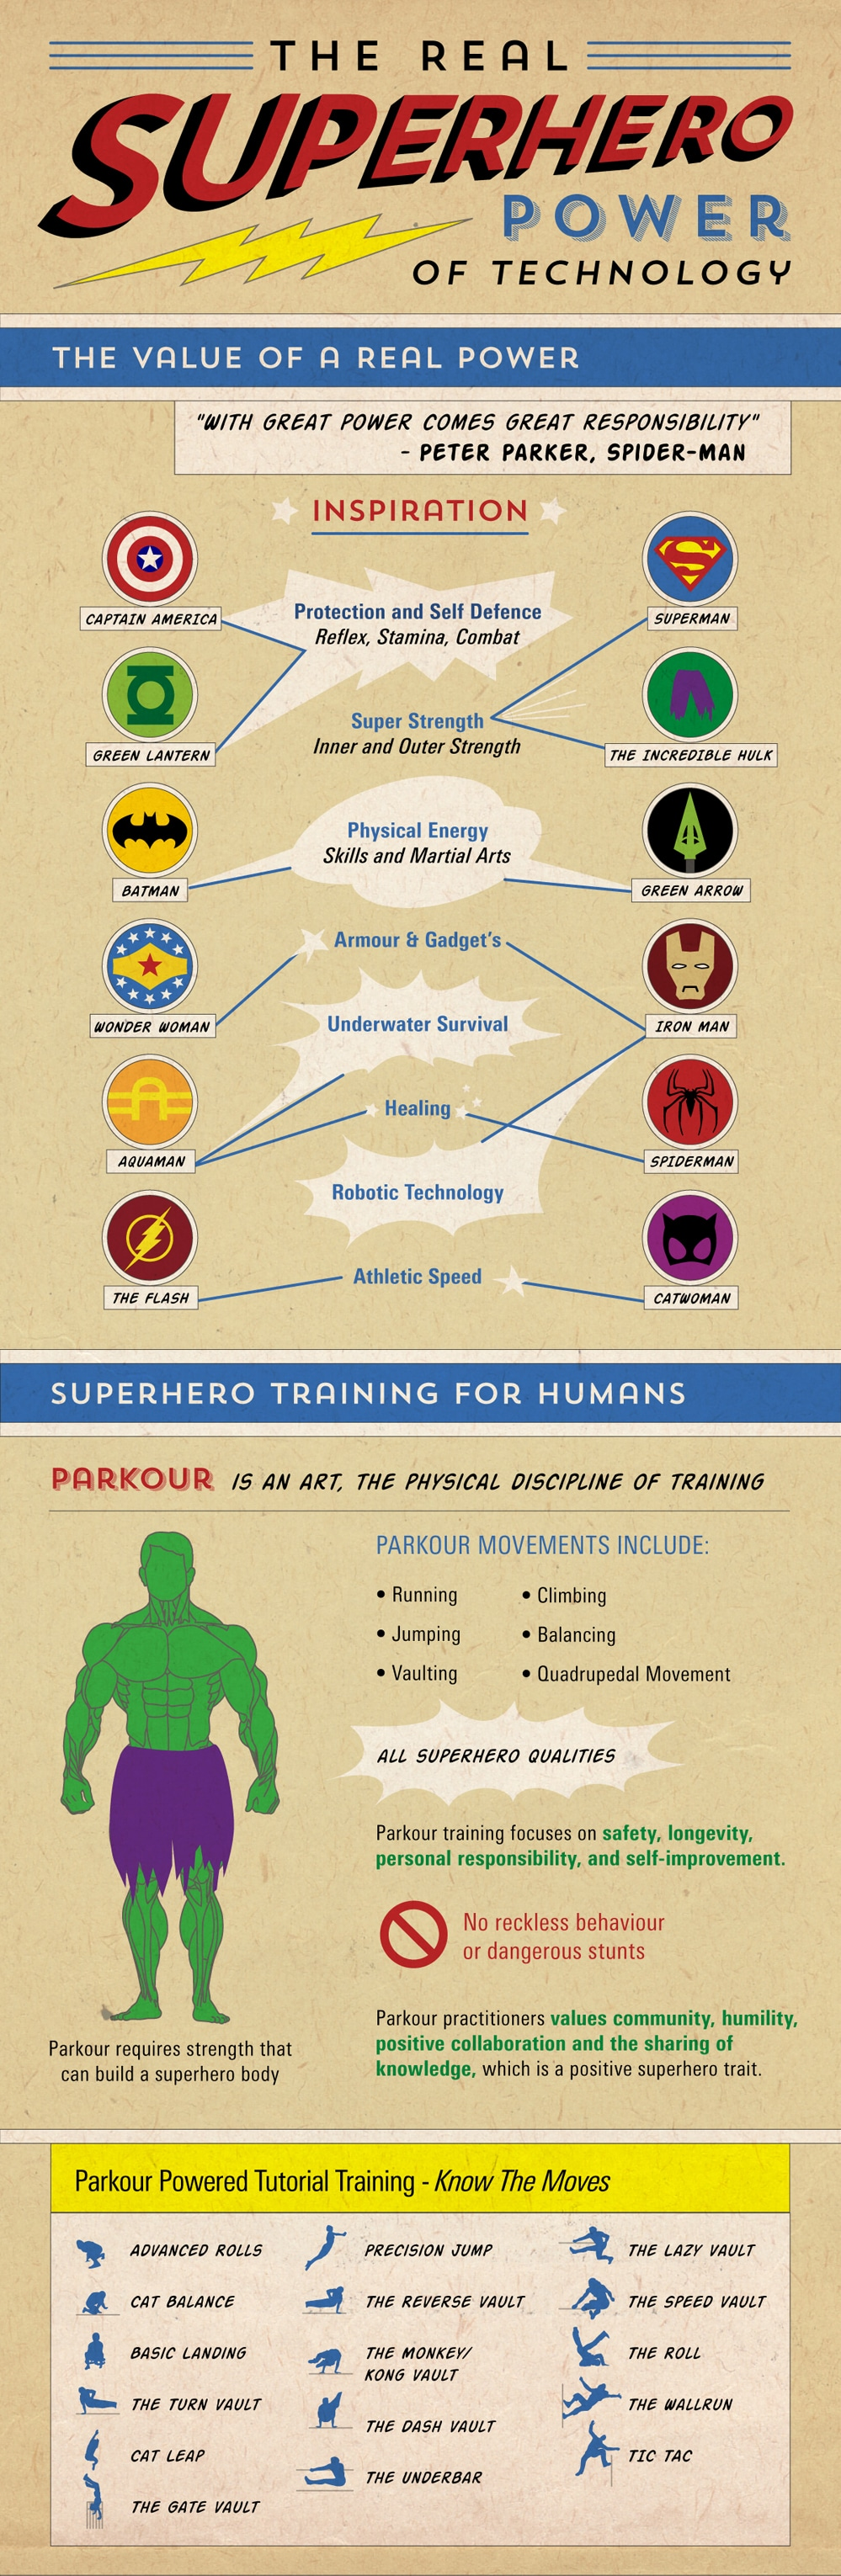 current-technologies-make-real-superheroes